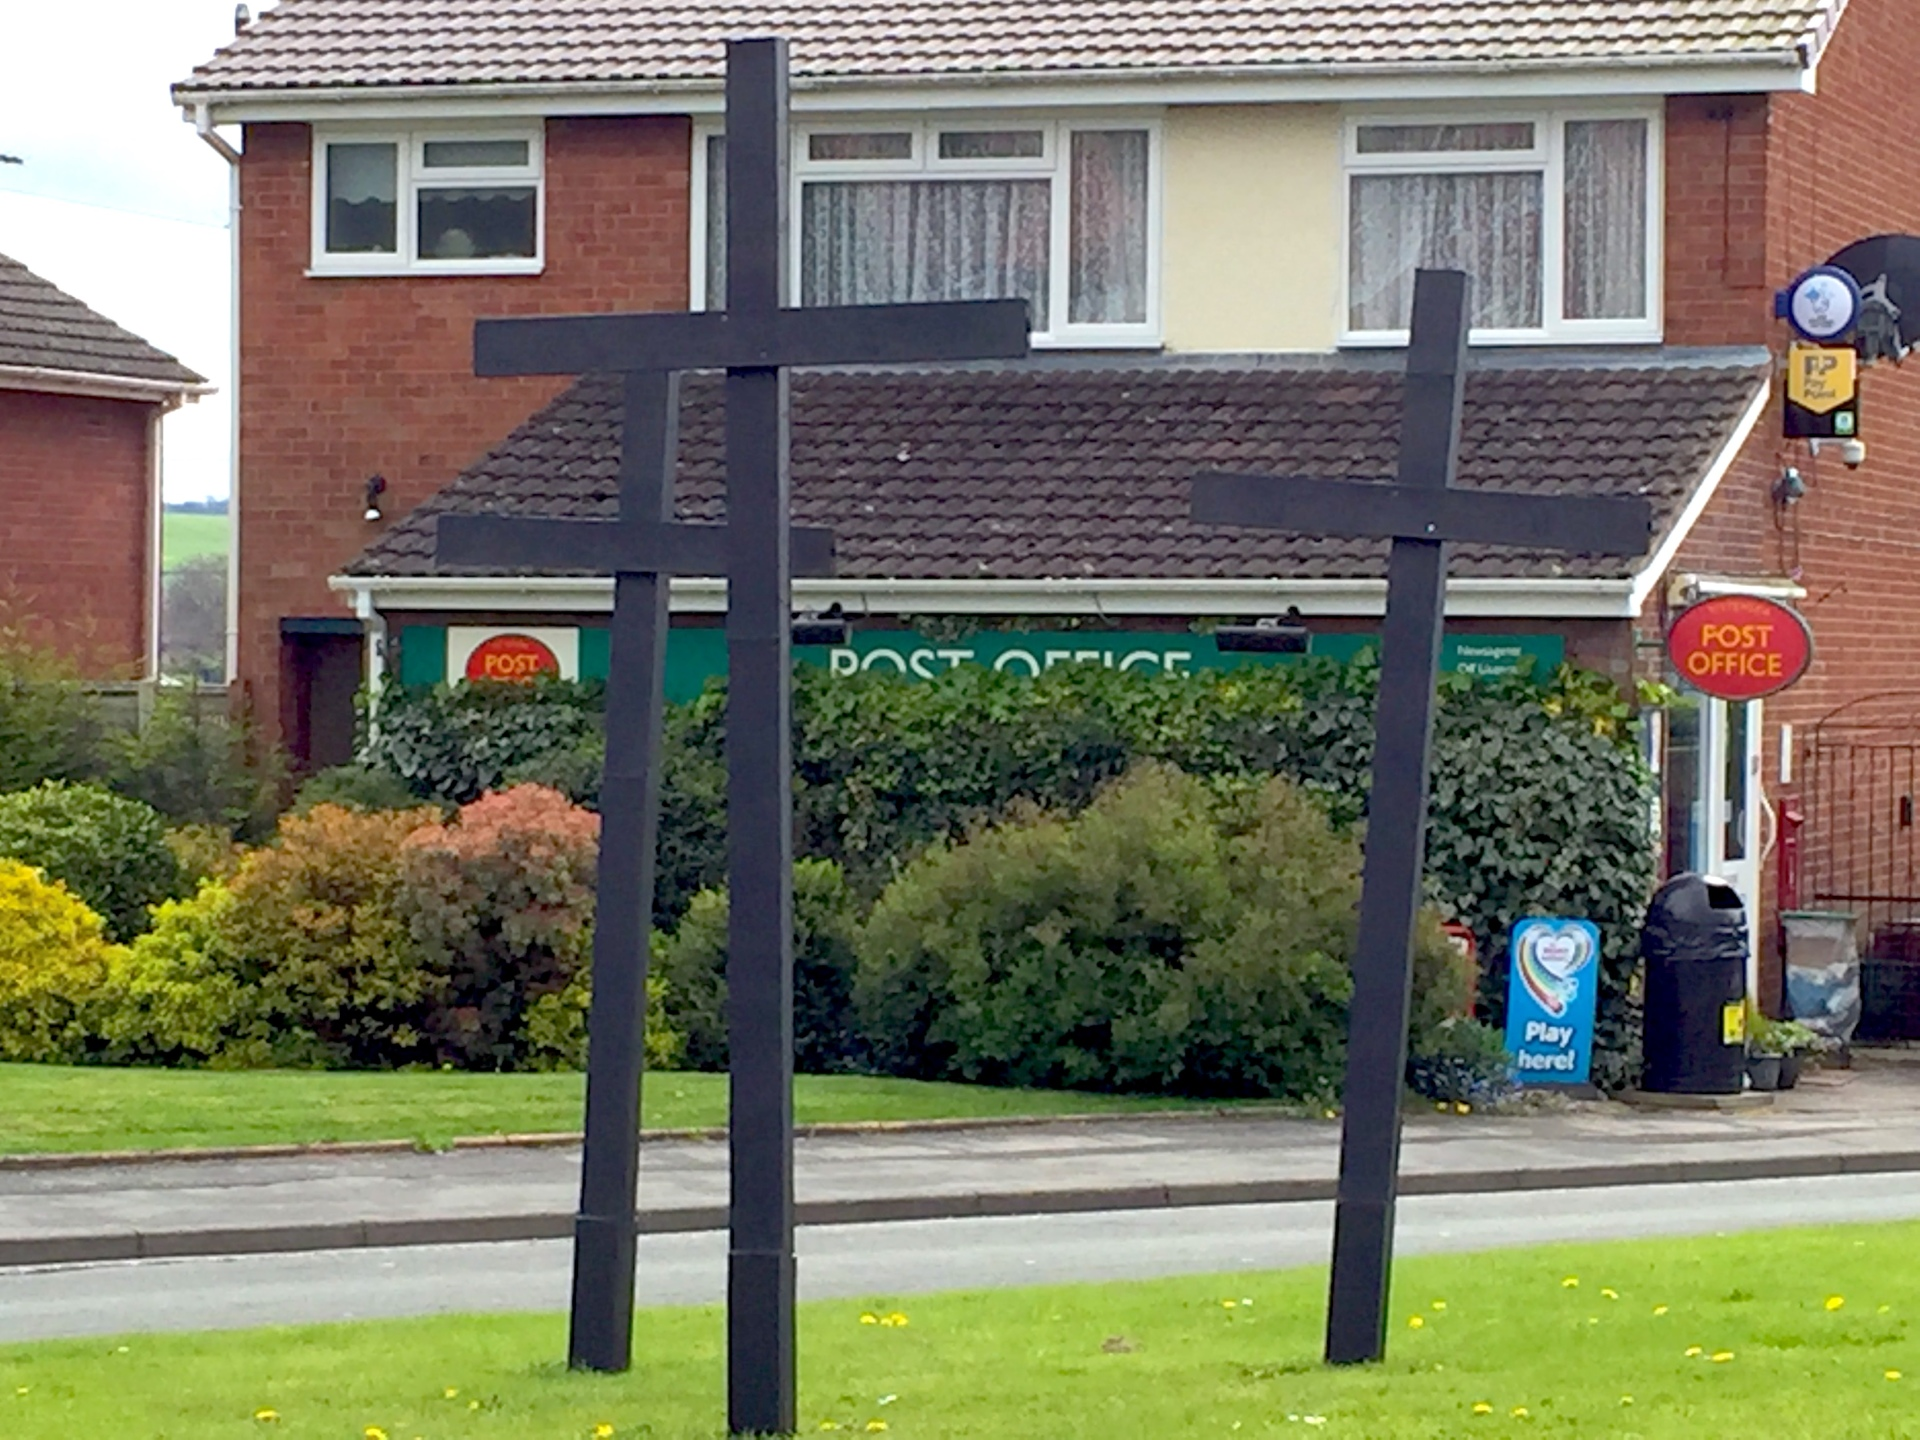 The crosses outside the Post Office